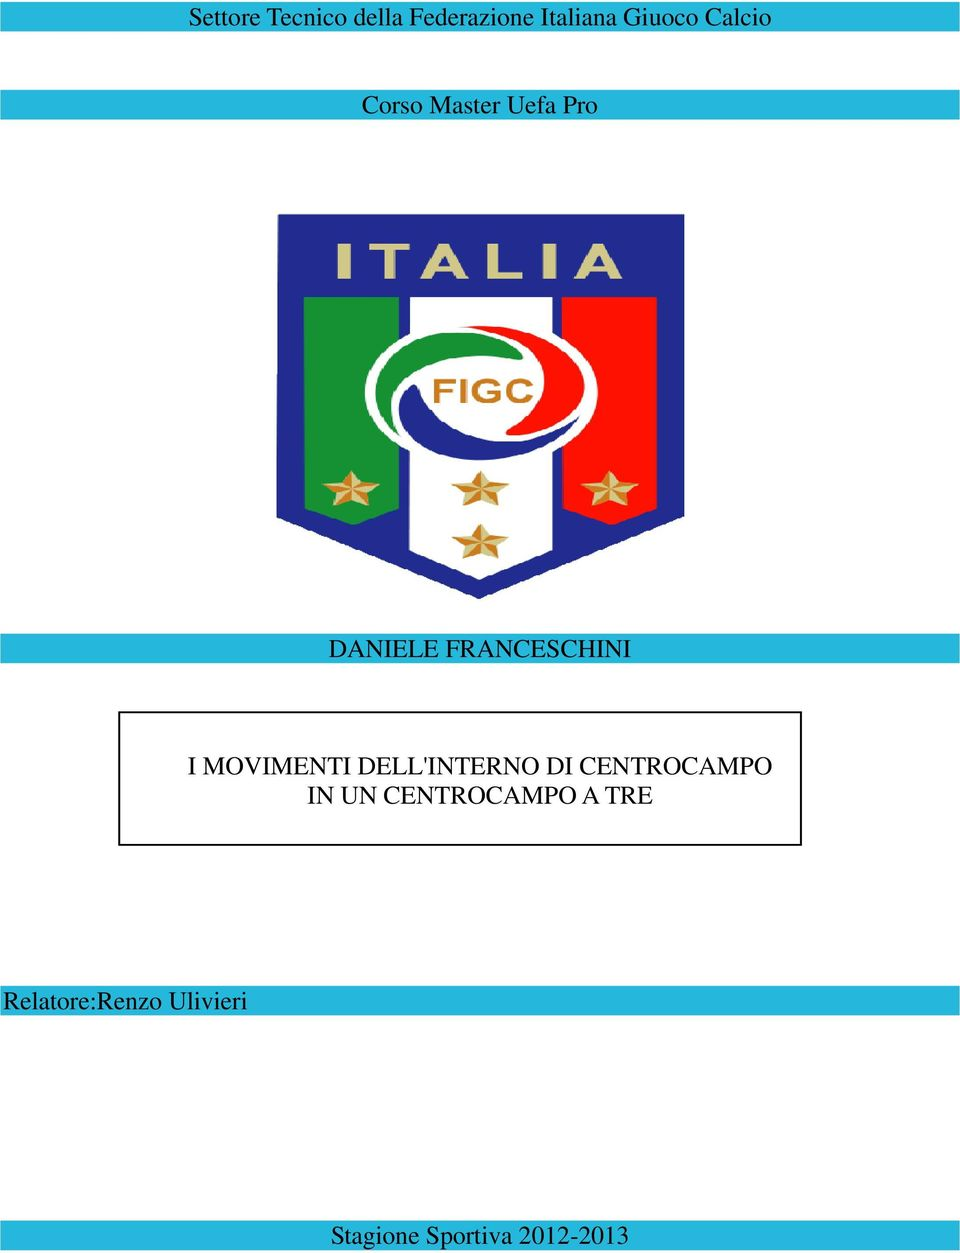 MOVIMENTI DELL'INTERNO DI CENTROCAMPO IN UN